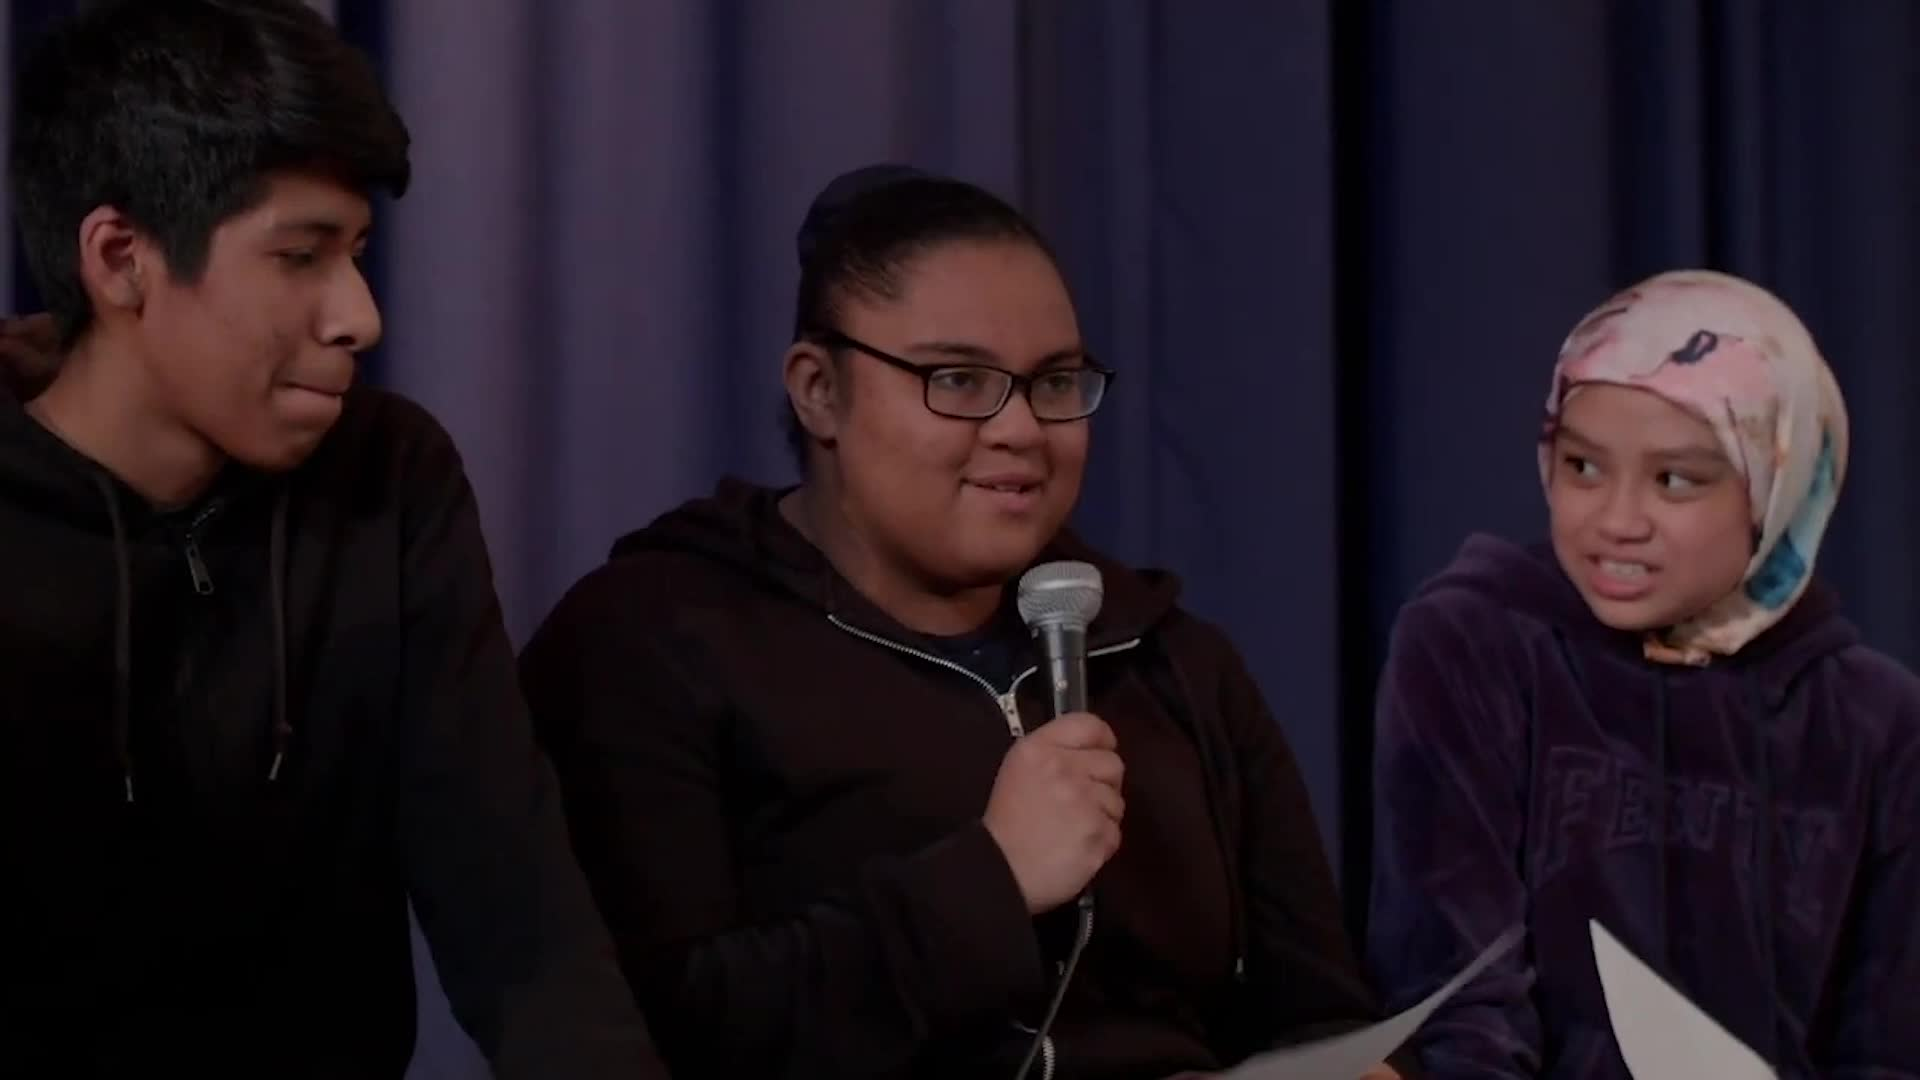 Several students sit on the edge of a stage. One by one they pass and speak into a microphone. At the end of the video, there are closeups of various collages made from text cutouts.